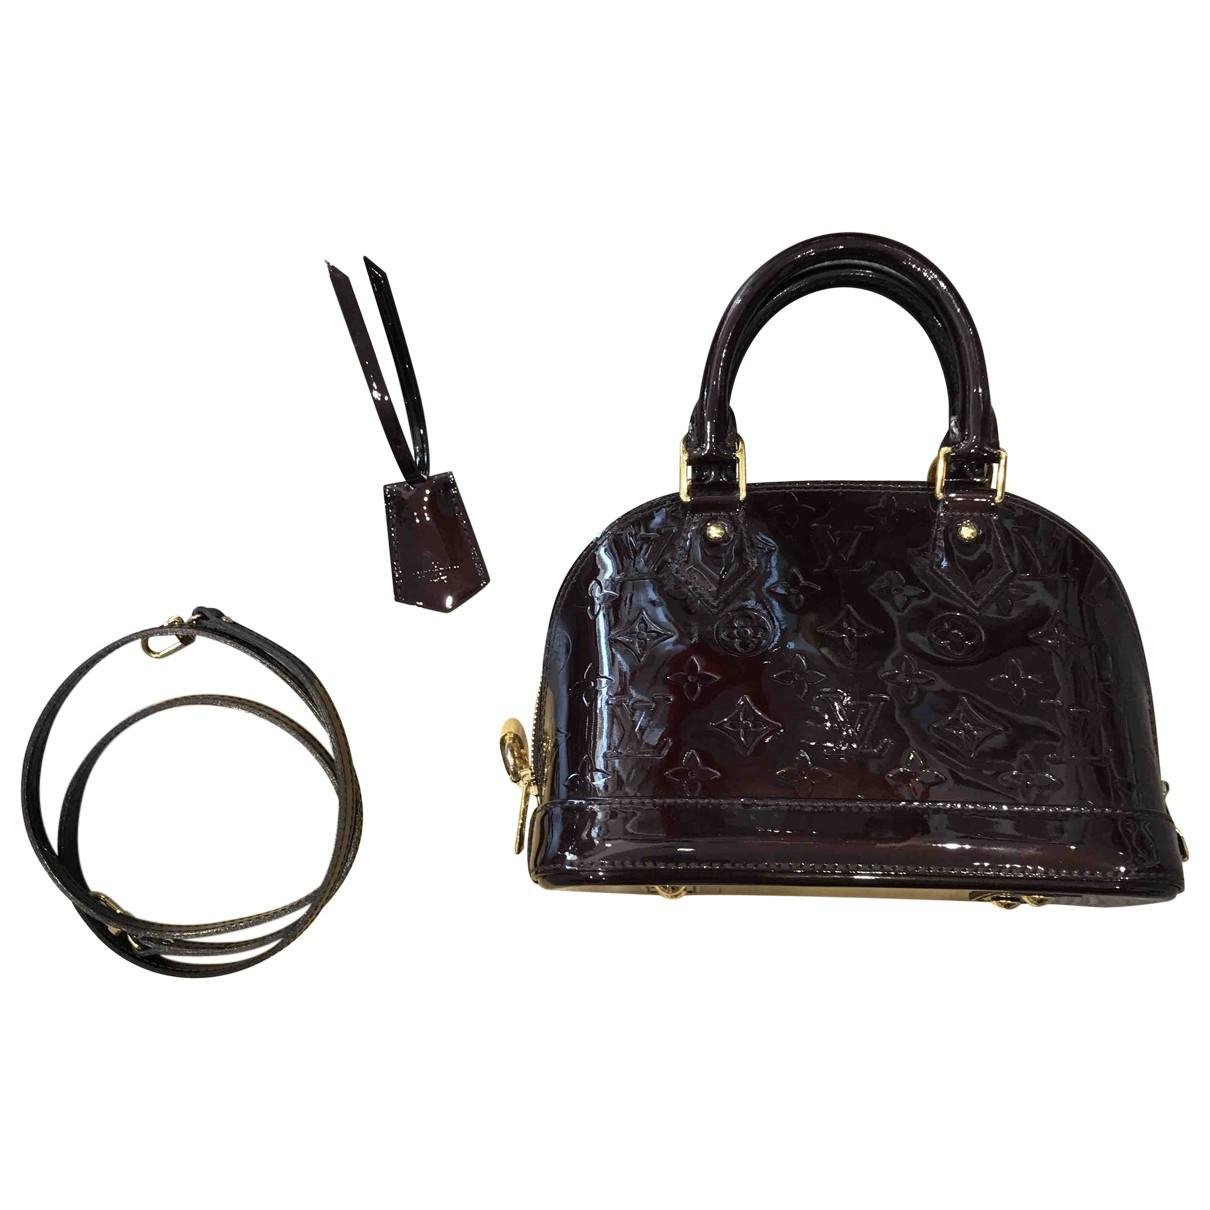 ccab71de819789 Louis Vuitton Alma Bb Patent Leather Crossbody Bag in Black - Lyst